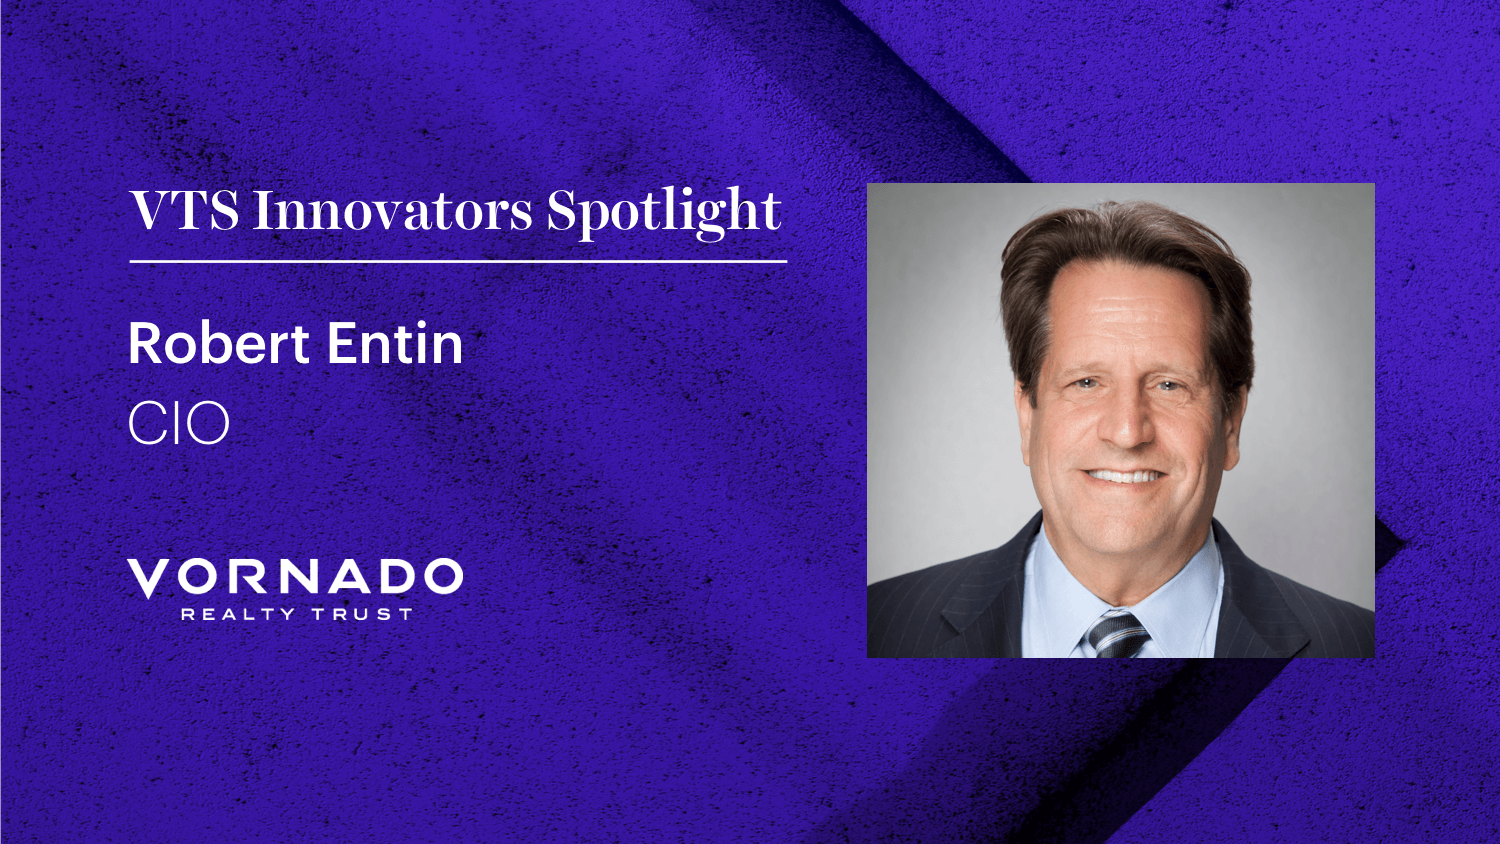 Vornado Realty Trust CIO Robert Entin's Best Practices for Evaluating New Commercial Real Estate Software and Building a Best in Class Tech Stack